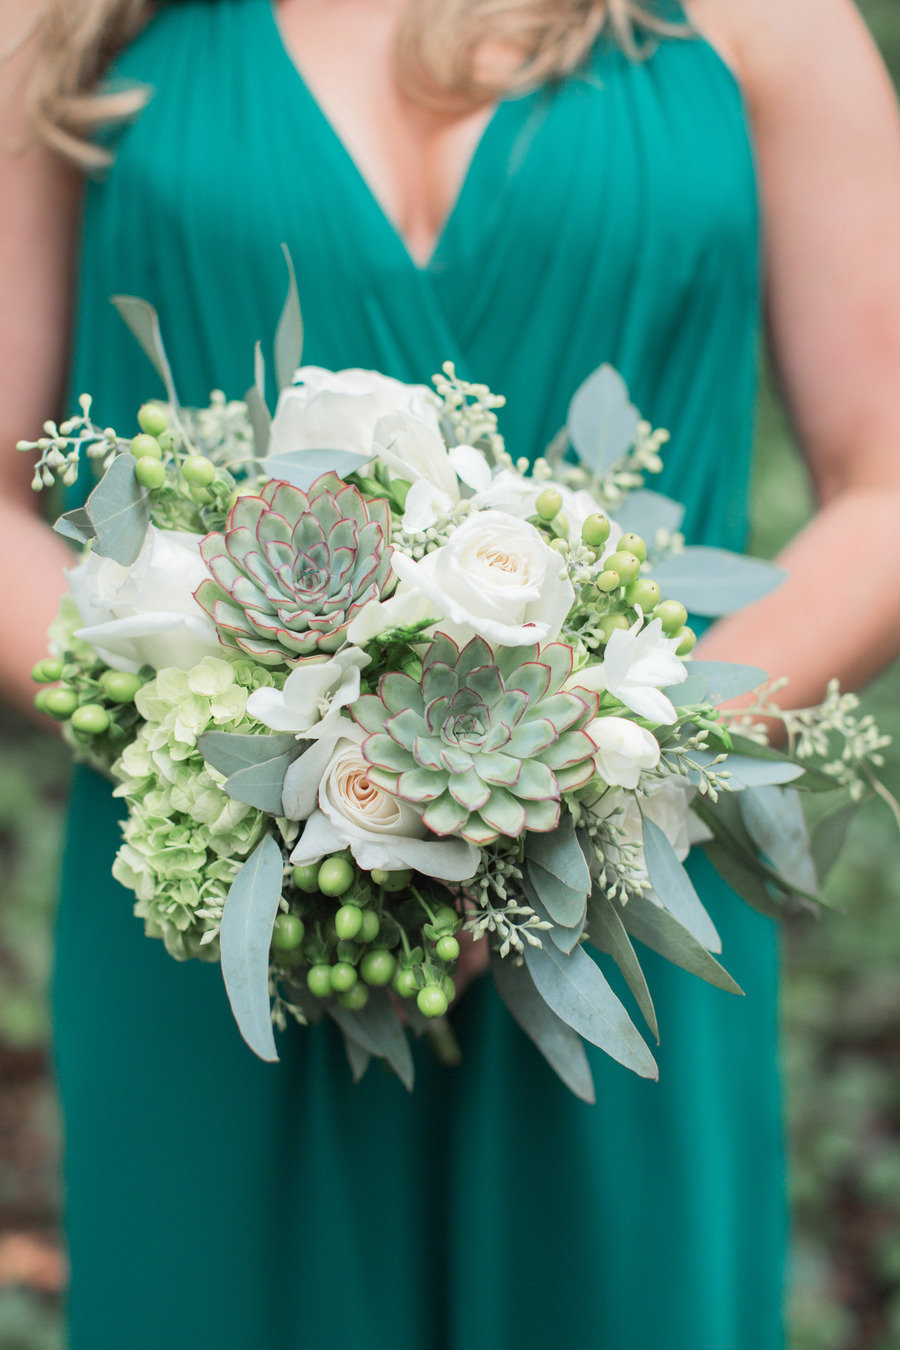 STYLE ME PRETTY: WHITNEY & JONNY'S GORGEOUS GREEN & WHITE WEDDING